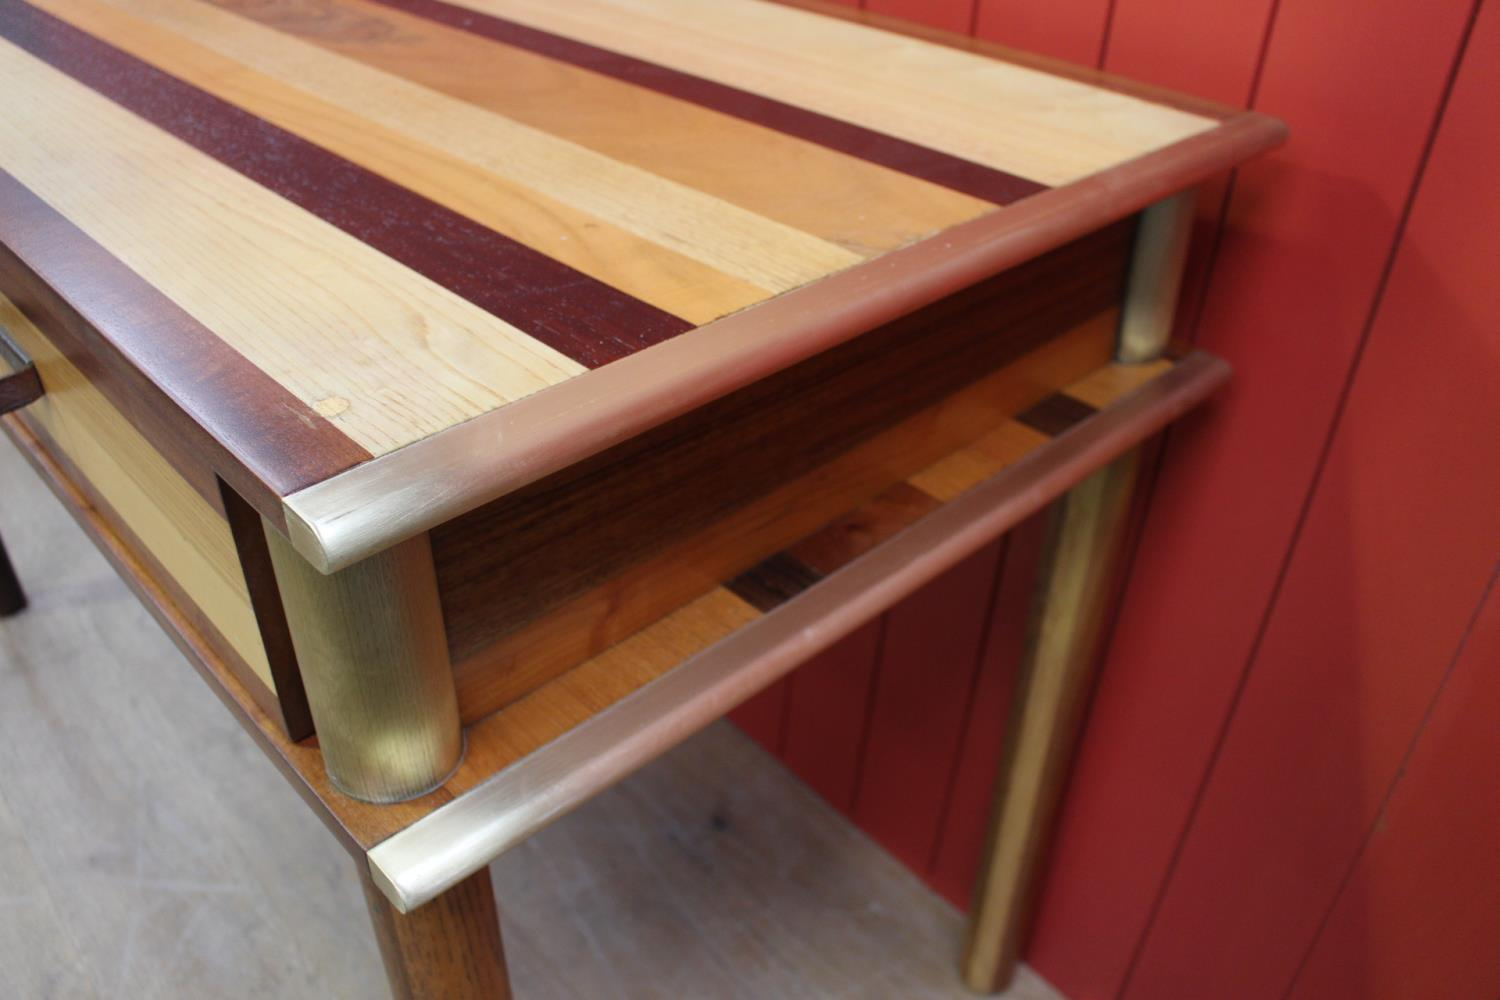 Brass bound consul table - Image 2 of 2